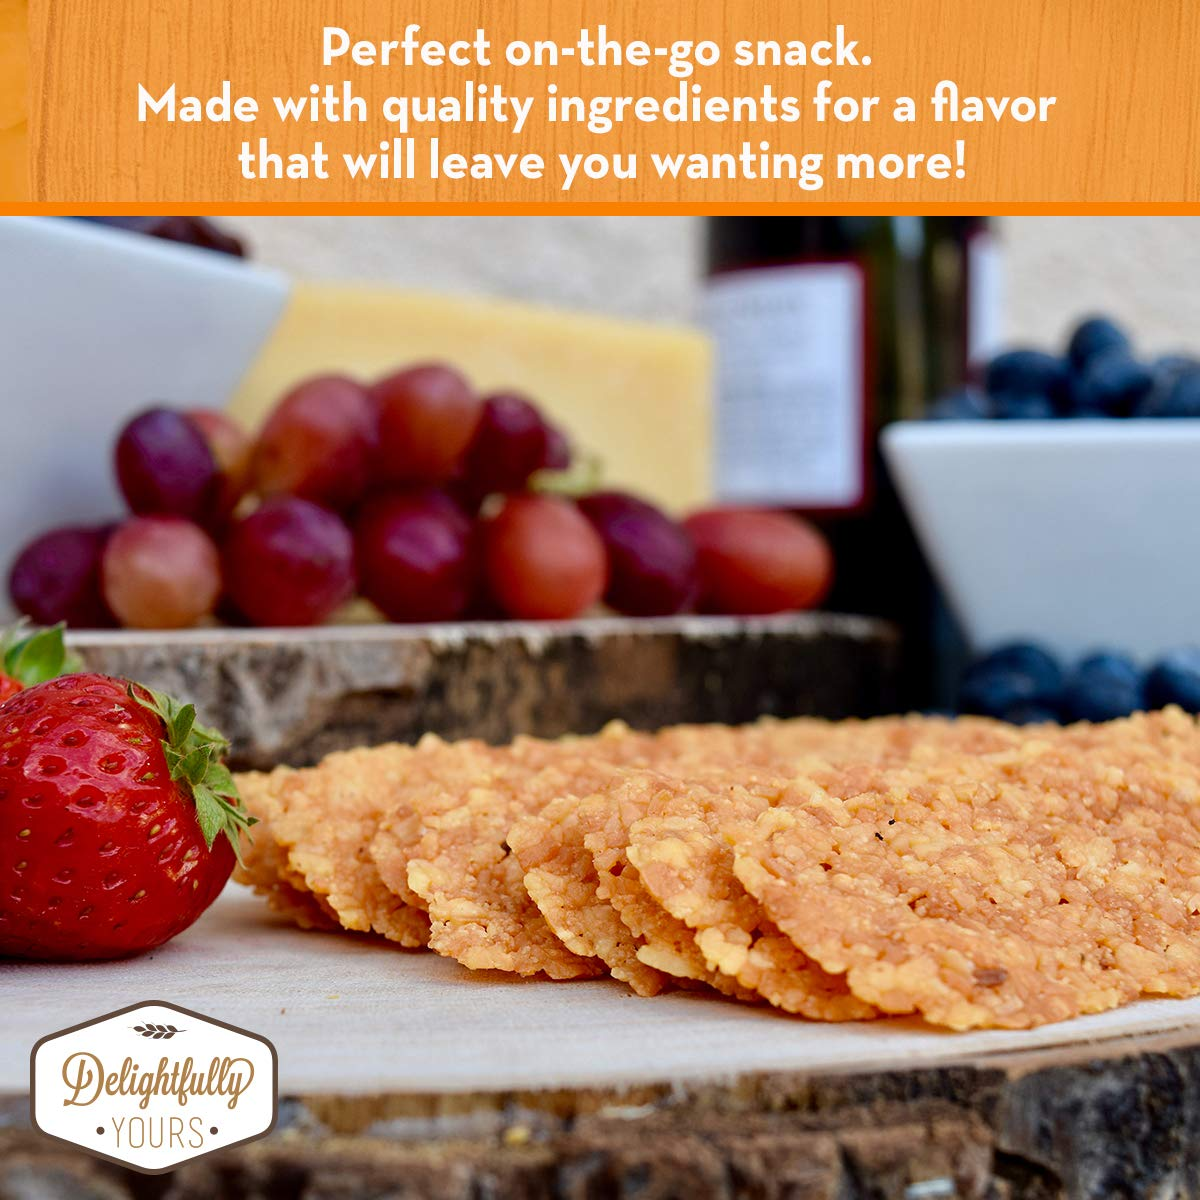 Delightfully Yours: Low Carb Parmesan Cheese Crisps {ORIGINAL Flavor} 100% aged - Flavorful Handmade - Keto Friendly Snack - All Natural - Wheat Free - Gluten Free - Protein Packed 12 OZ (4 PACK) by Delightfully Yours (Image #5)